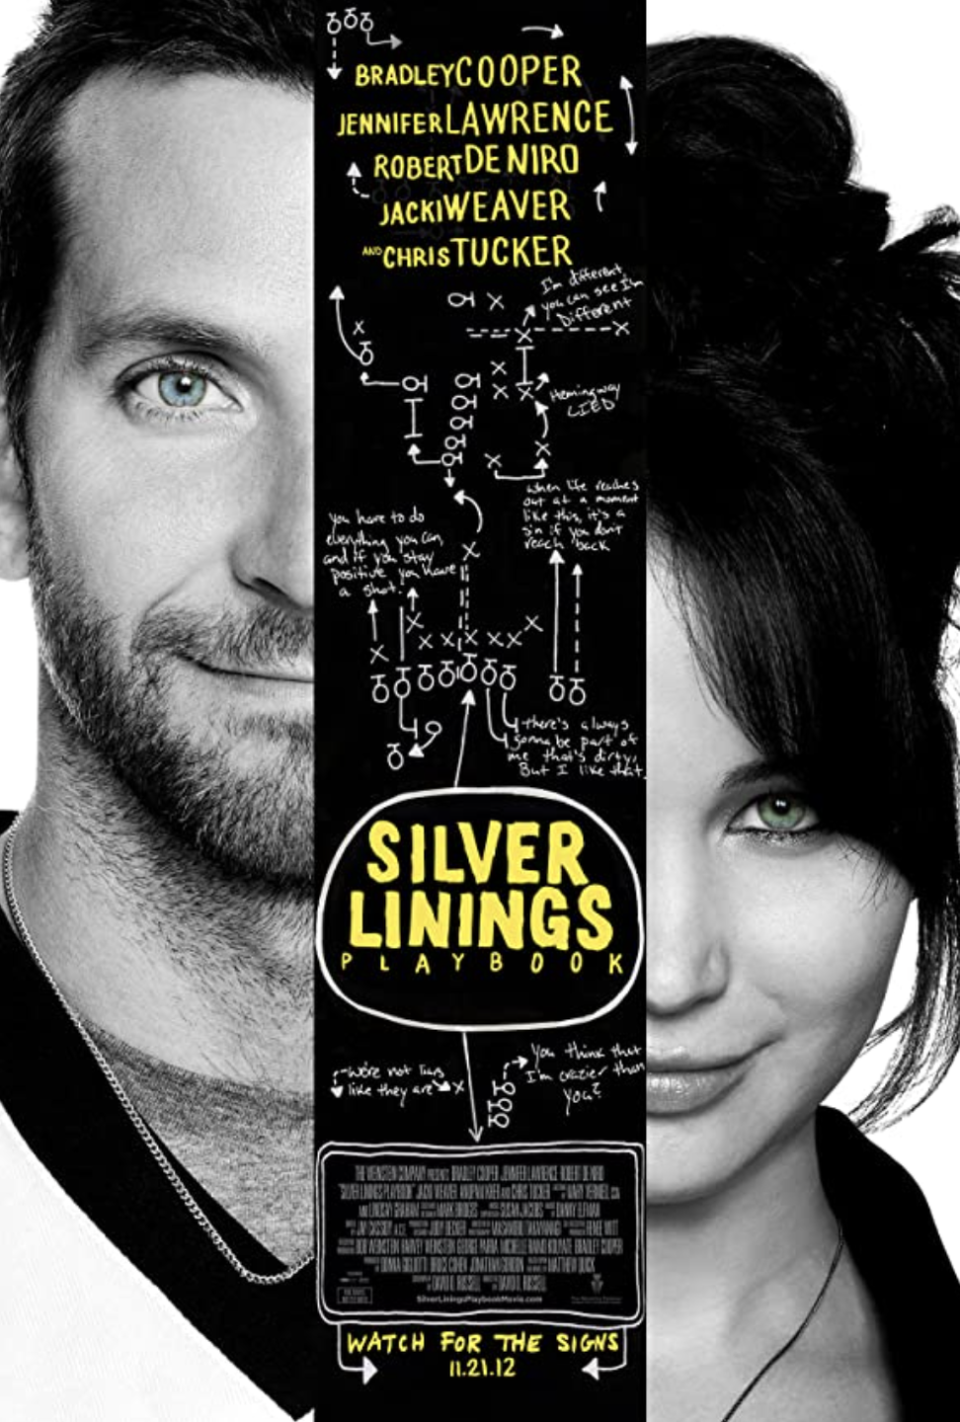 """<p><a class=""""link rapid-noclick-resp"""" href=""""https://www.amazon.com/Silver-Linings-Playbook-Bradley-Cooper/dp/B00BYKIKJS/?tag=syn-yahoo-20&ascsubtag=%5Bartid%7C10070.g.37644376%5Bsrc%7Cyahoo-us"""" rel=""""nofollow noopener"""" target=""""_blank"""" data-ylk=""""slk:STREAM NOW"""">STREAM NOW</a></p><p>Pat and Tiffany may be dysfunctional in their own ways, but they just seem to get one another, which makes watching their connection grow that much more interesting. Football also features heavily in this film, giving it a distinct autumnal vibe.</p>"""